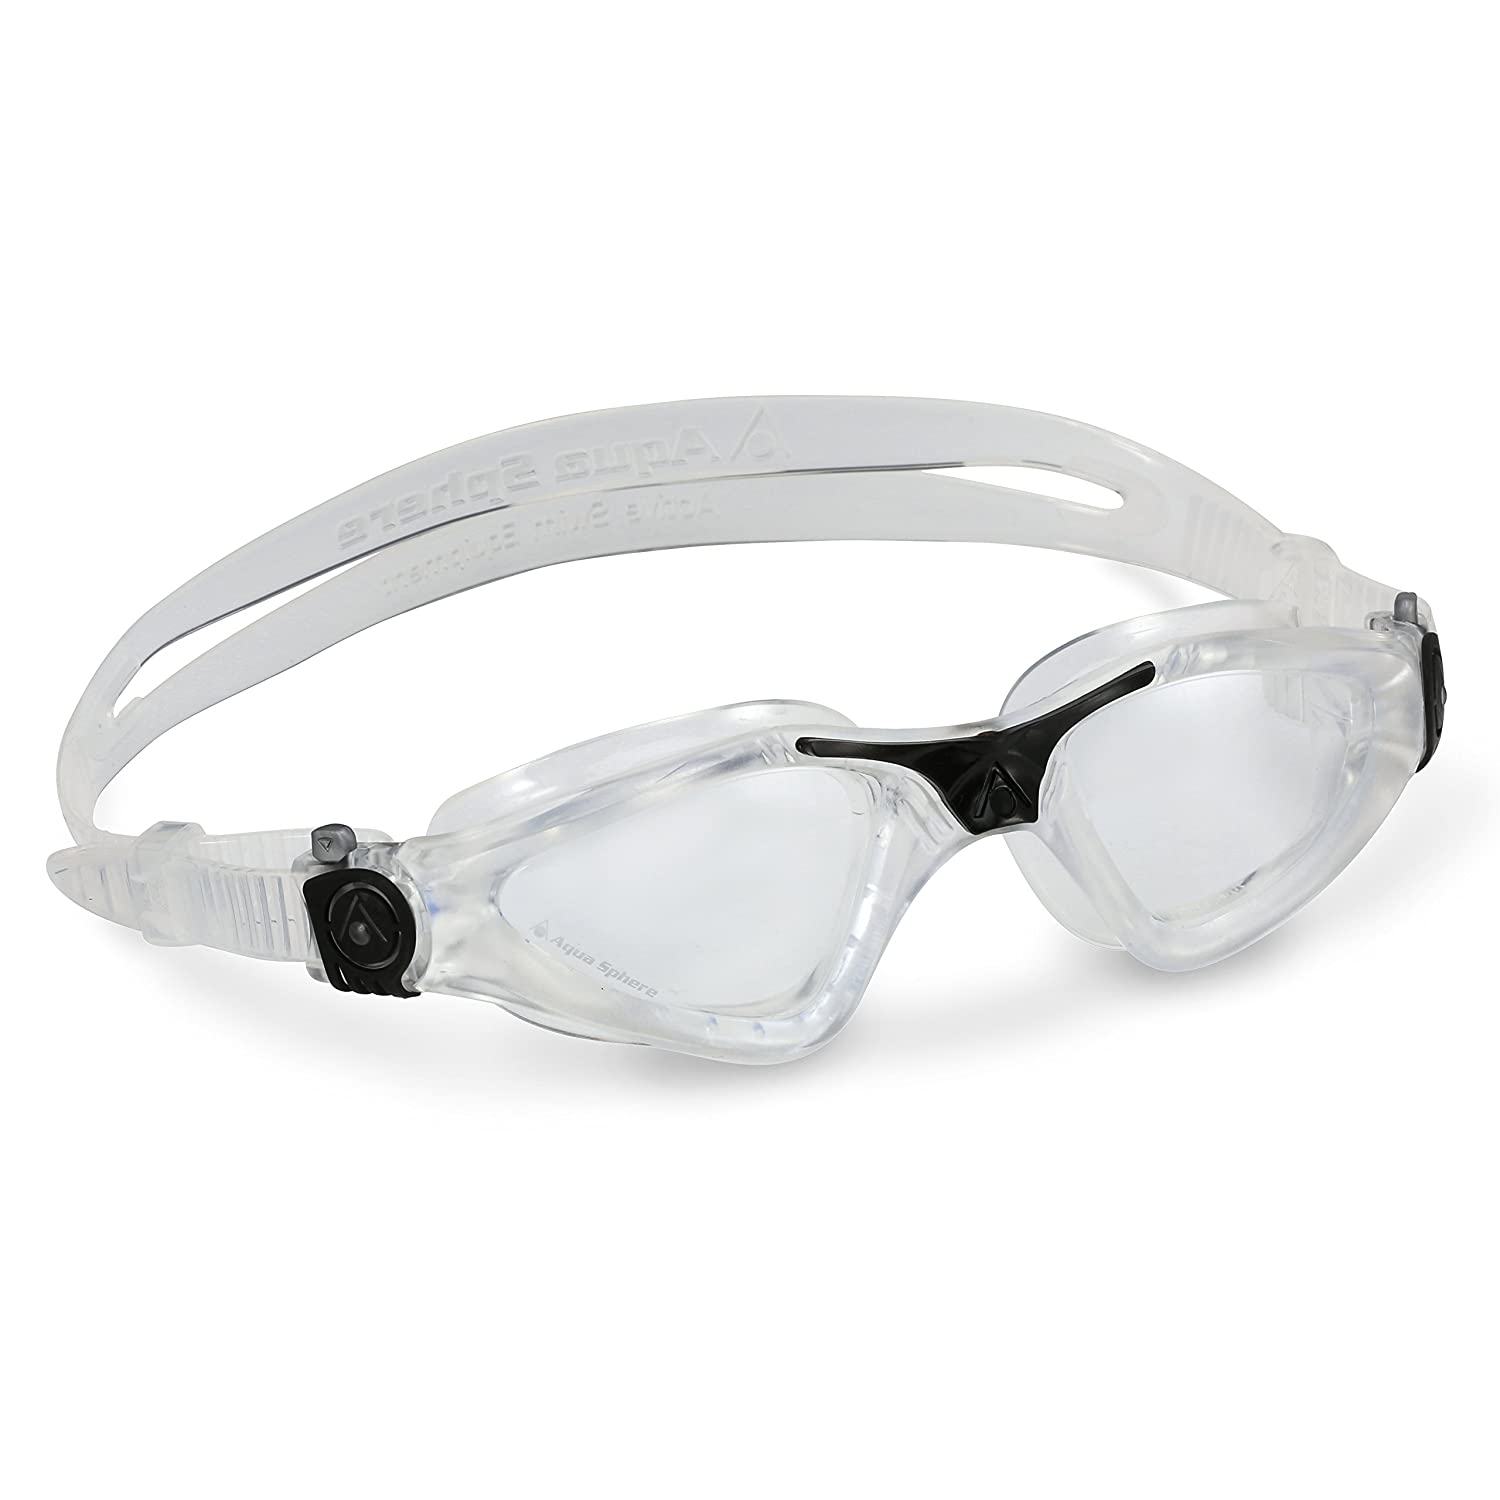 25f56ae80368 Amazon.com  Aqua Sphere Kayenne Swim Goggles with Clear Lens (Clear Black)   Sports   Outdoors